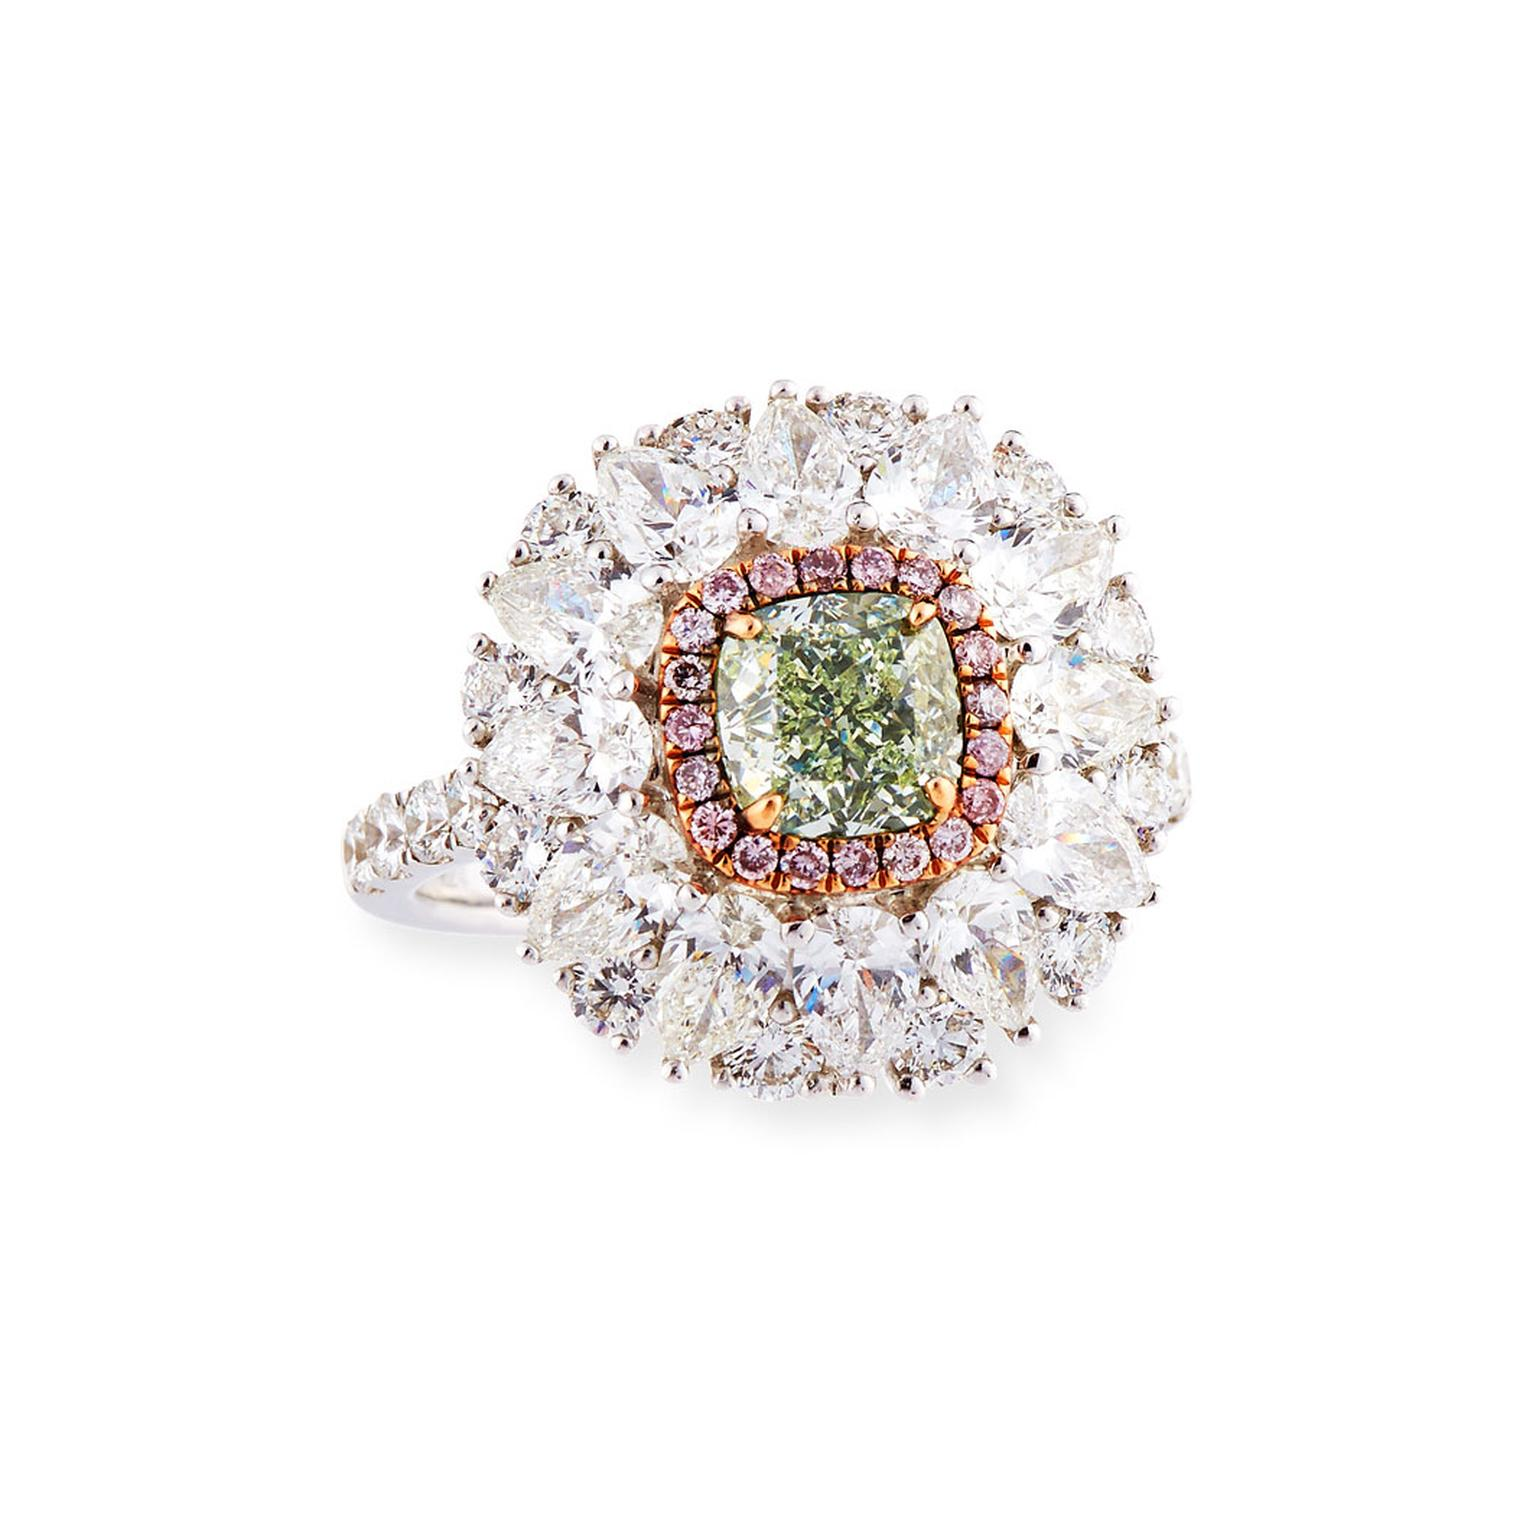 Alexander Laut green diamond ring